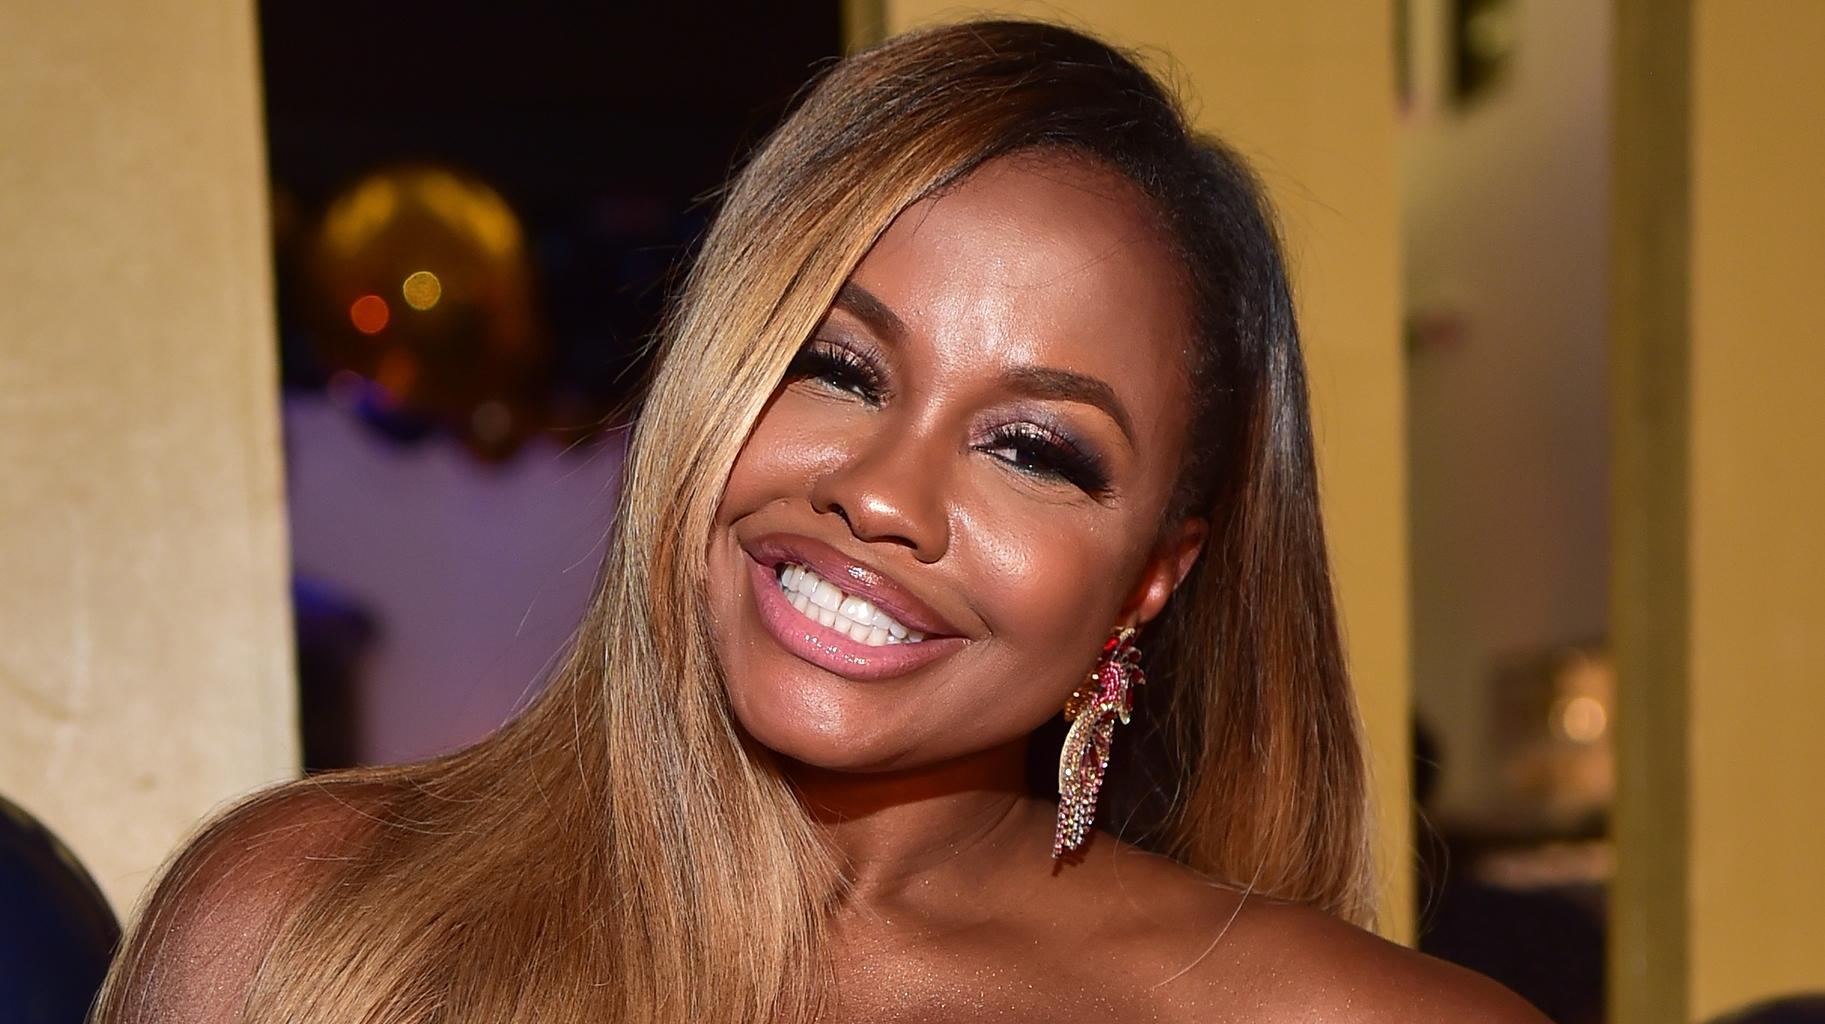 Phaedra Parks Shares A Holiday Flashback With Her Two Boys - See The Photo Here